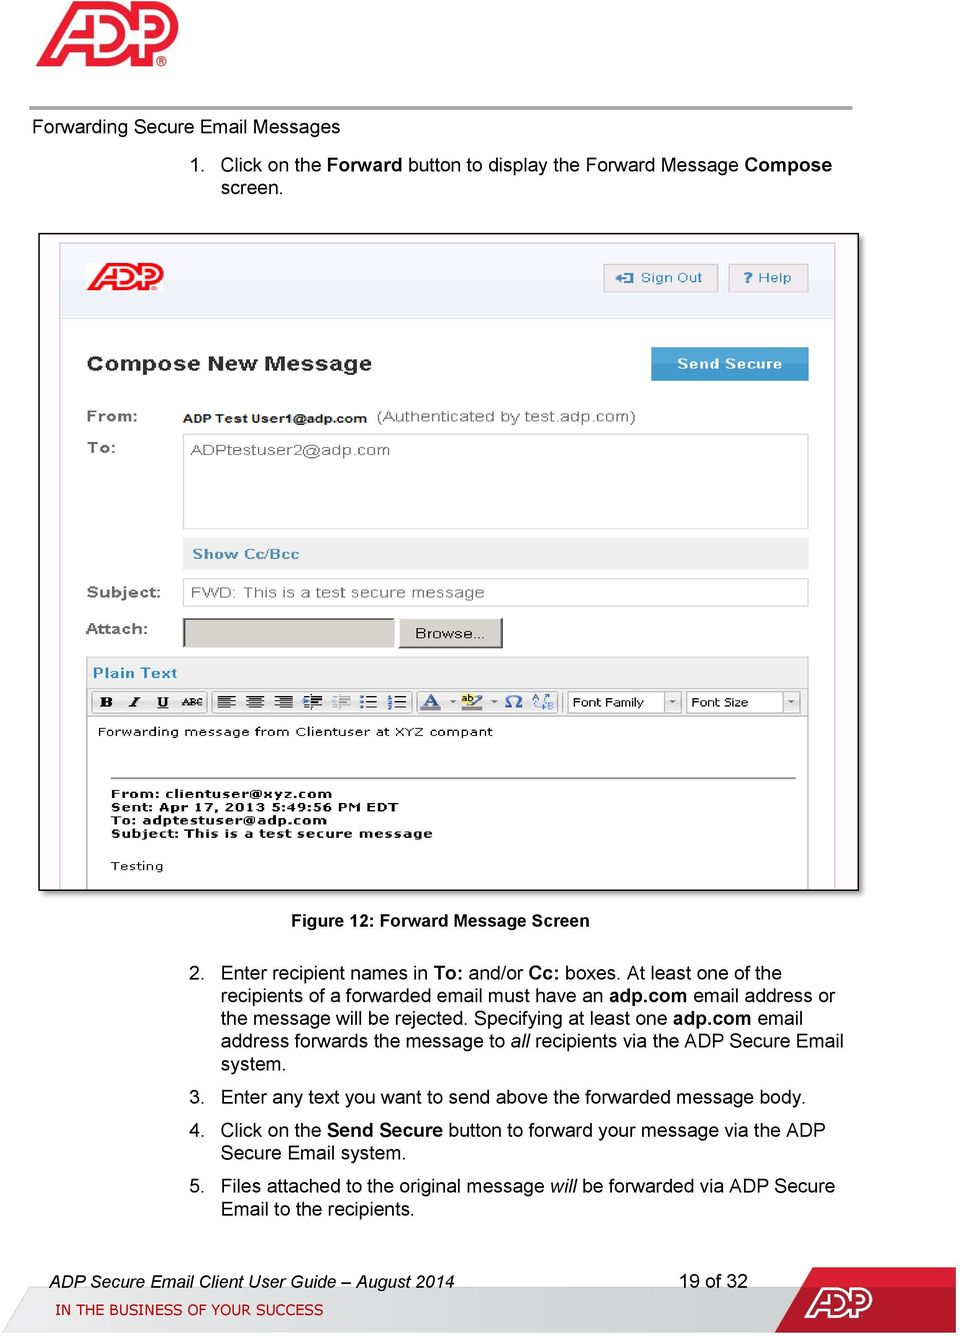 Specifying at least one adp.com email address forwards the message to all recipients via the ADP Secure Email system. 3. Enter any text you want to send above the forwarded message body.